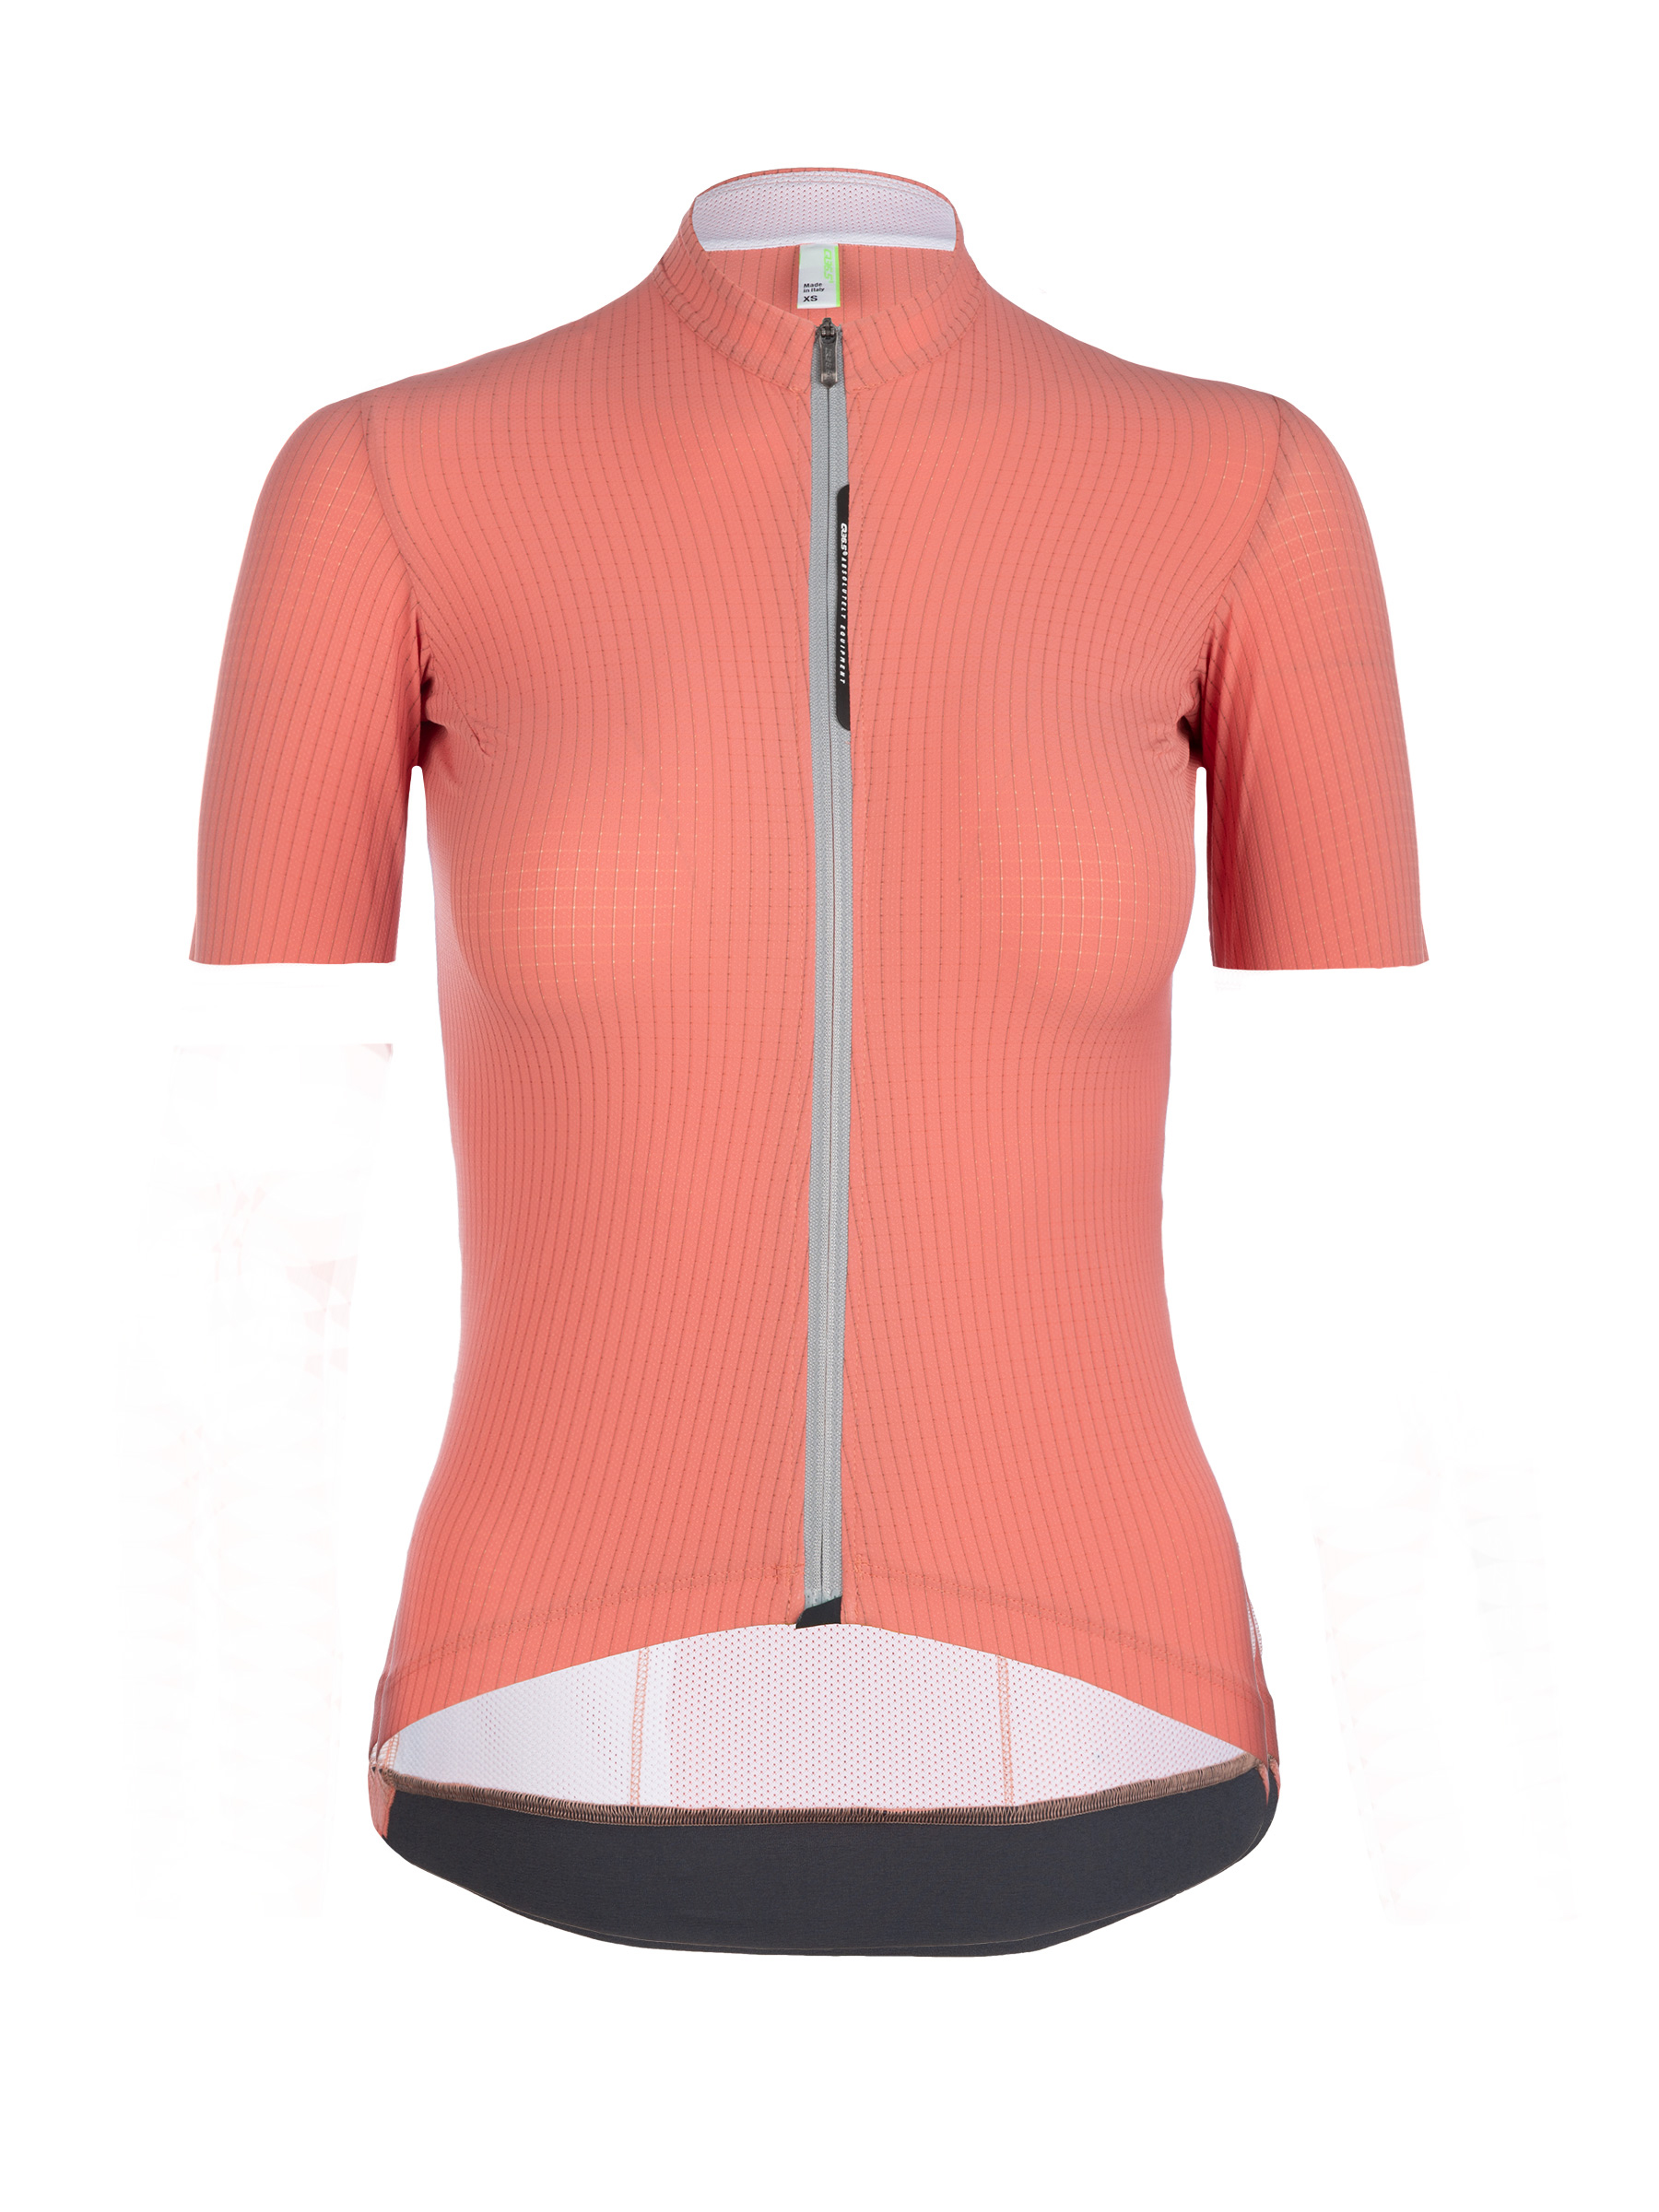 womens-cycling-jersey-pinstripe-x-antique-rose